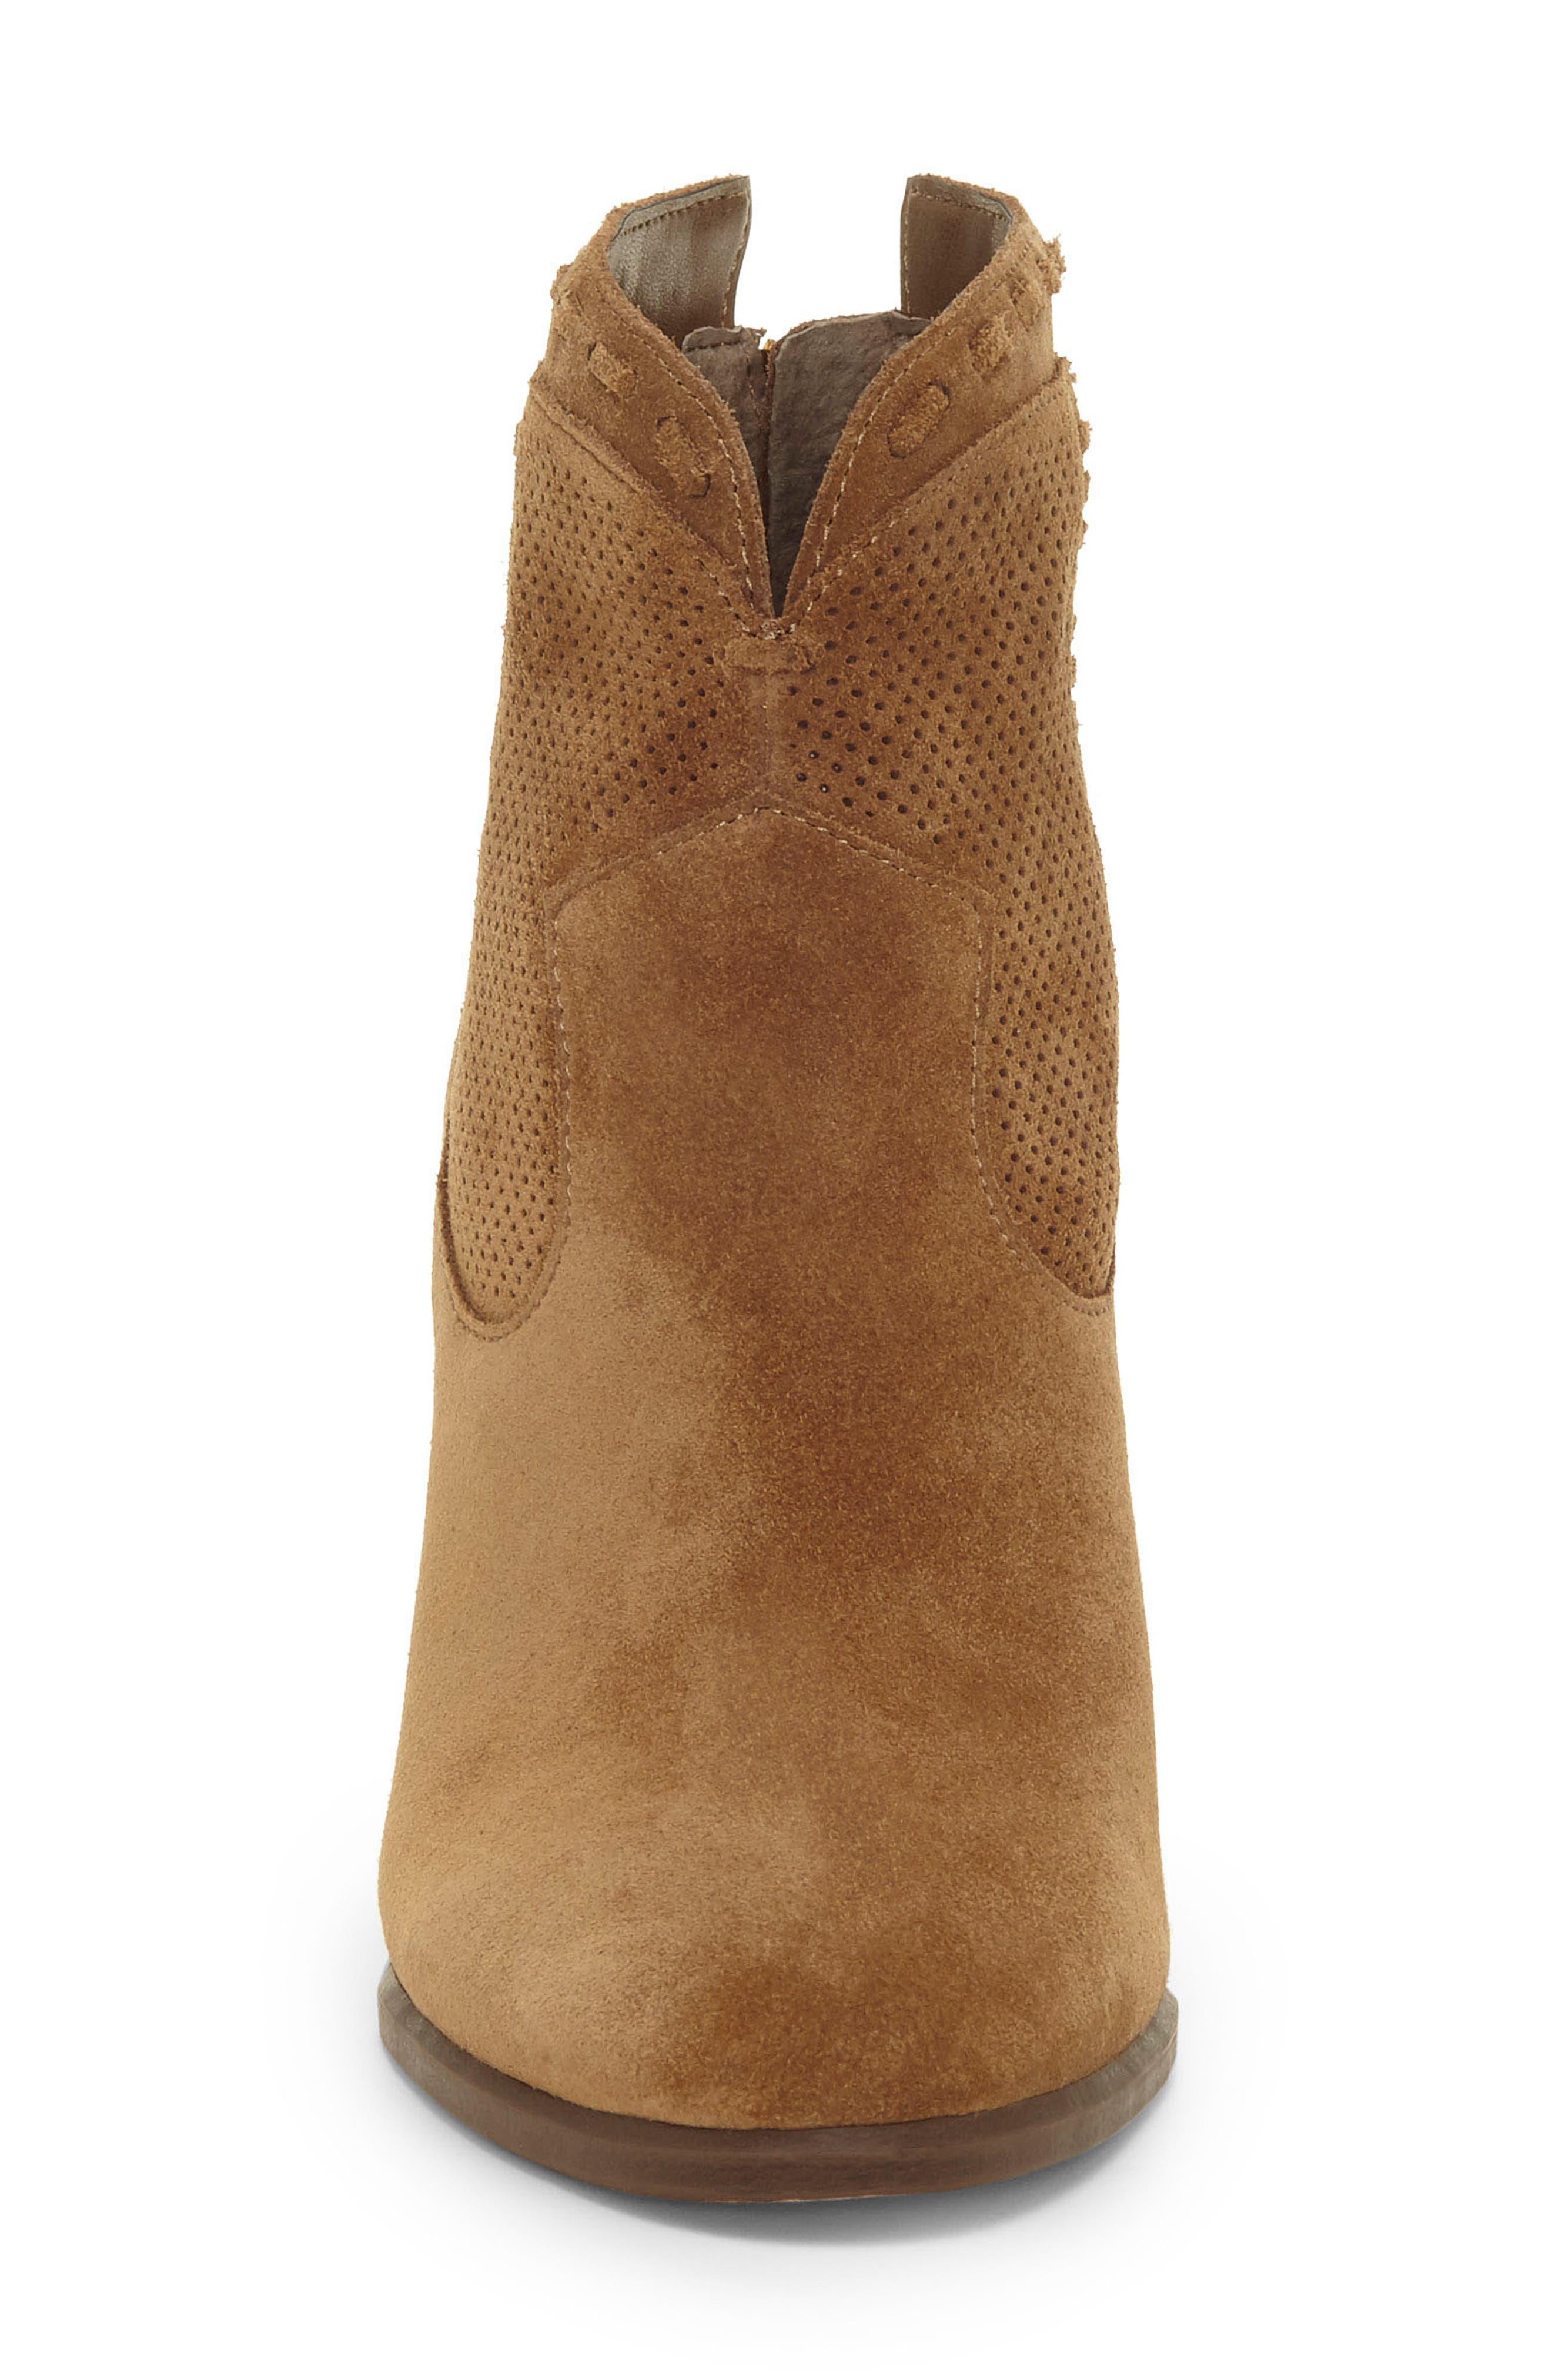 VINCE CAMUTO, Fretzia Perforated Boot, Alternate thumbnail 4, color, TREE HOUSE NUBUCK